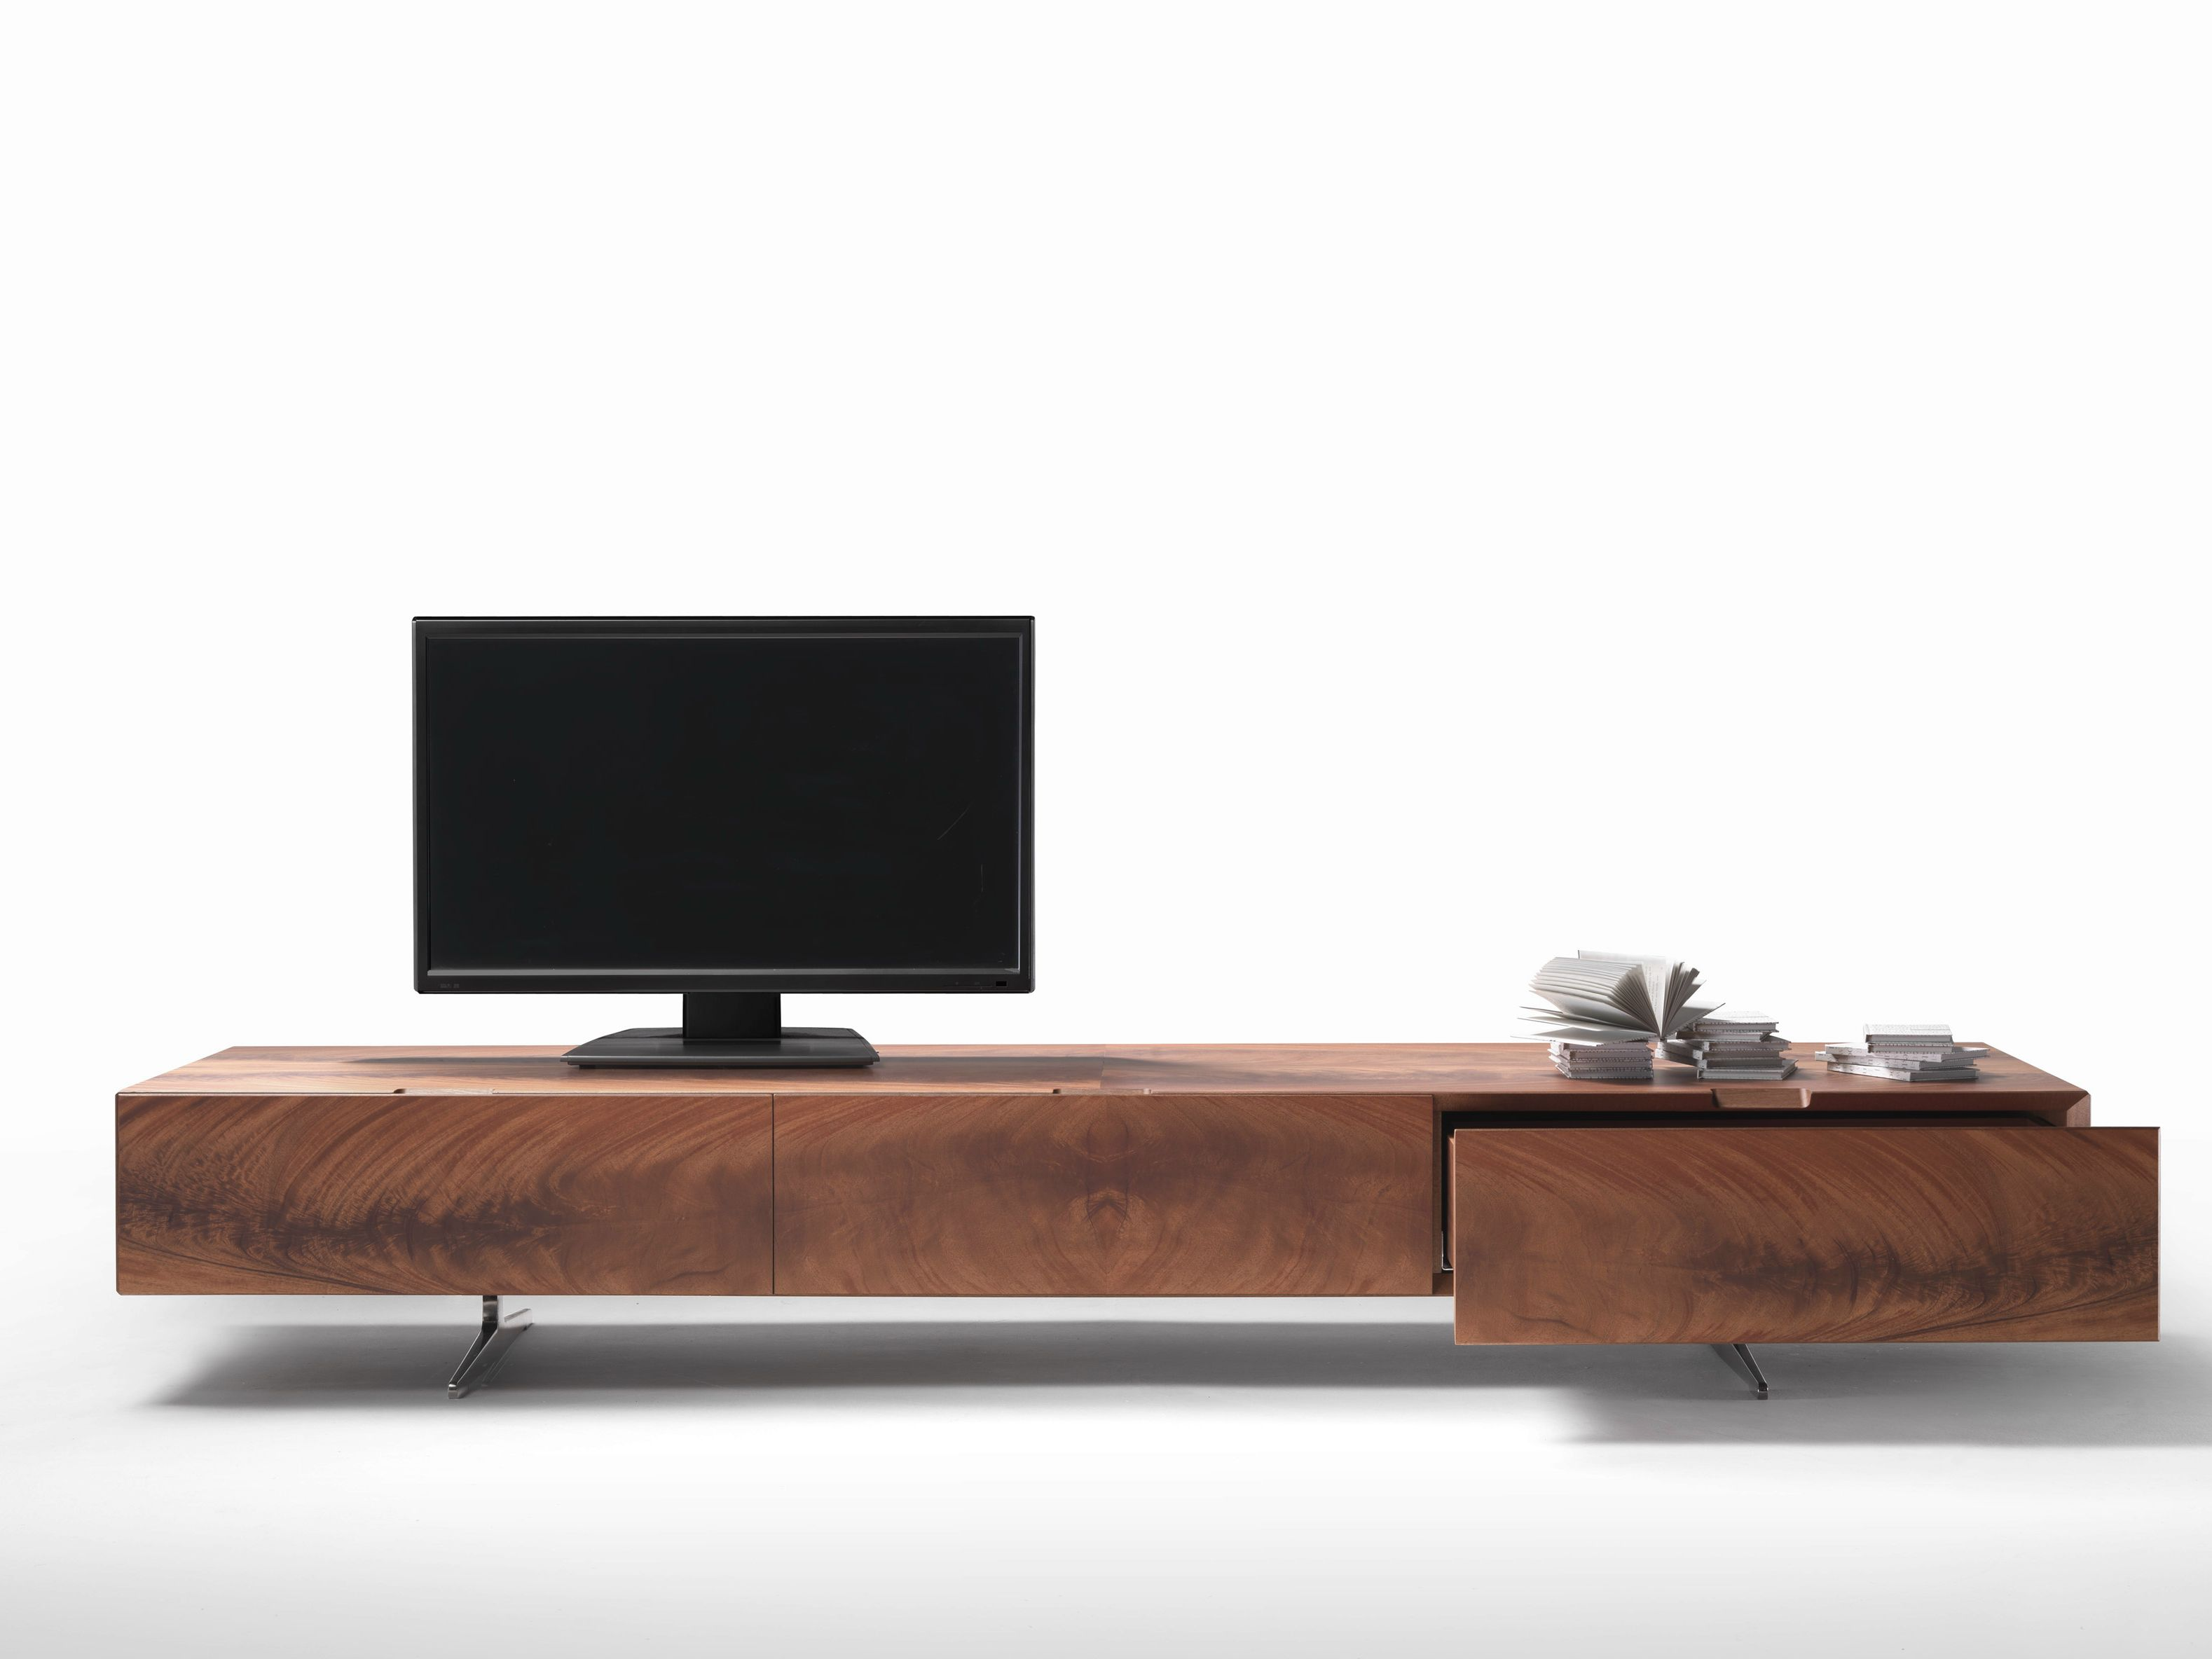 Büromöbel design holz  TV-Lowboard aus Holz Kollektion Piuma by FLEXFORM | Design Antonio ...